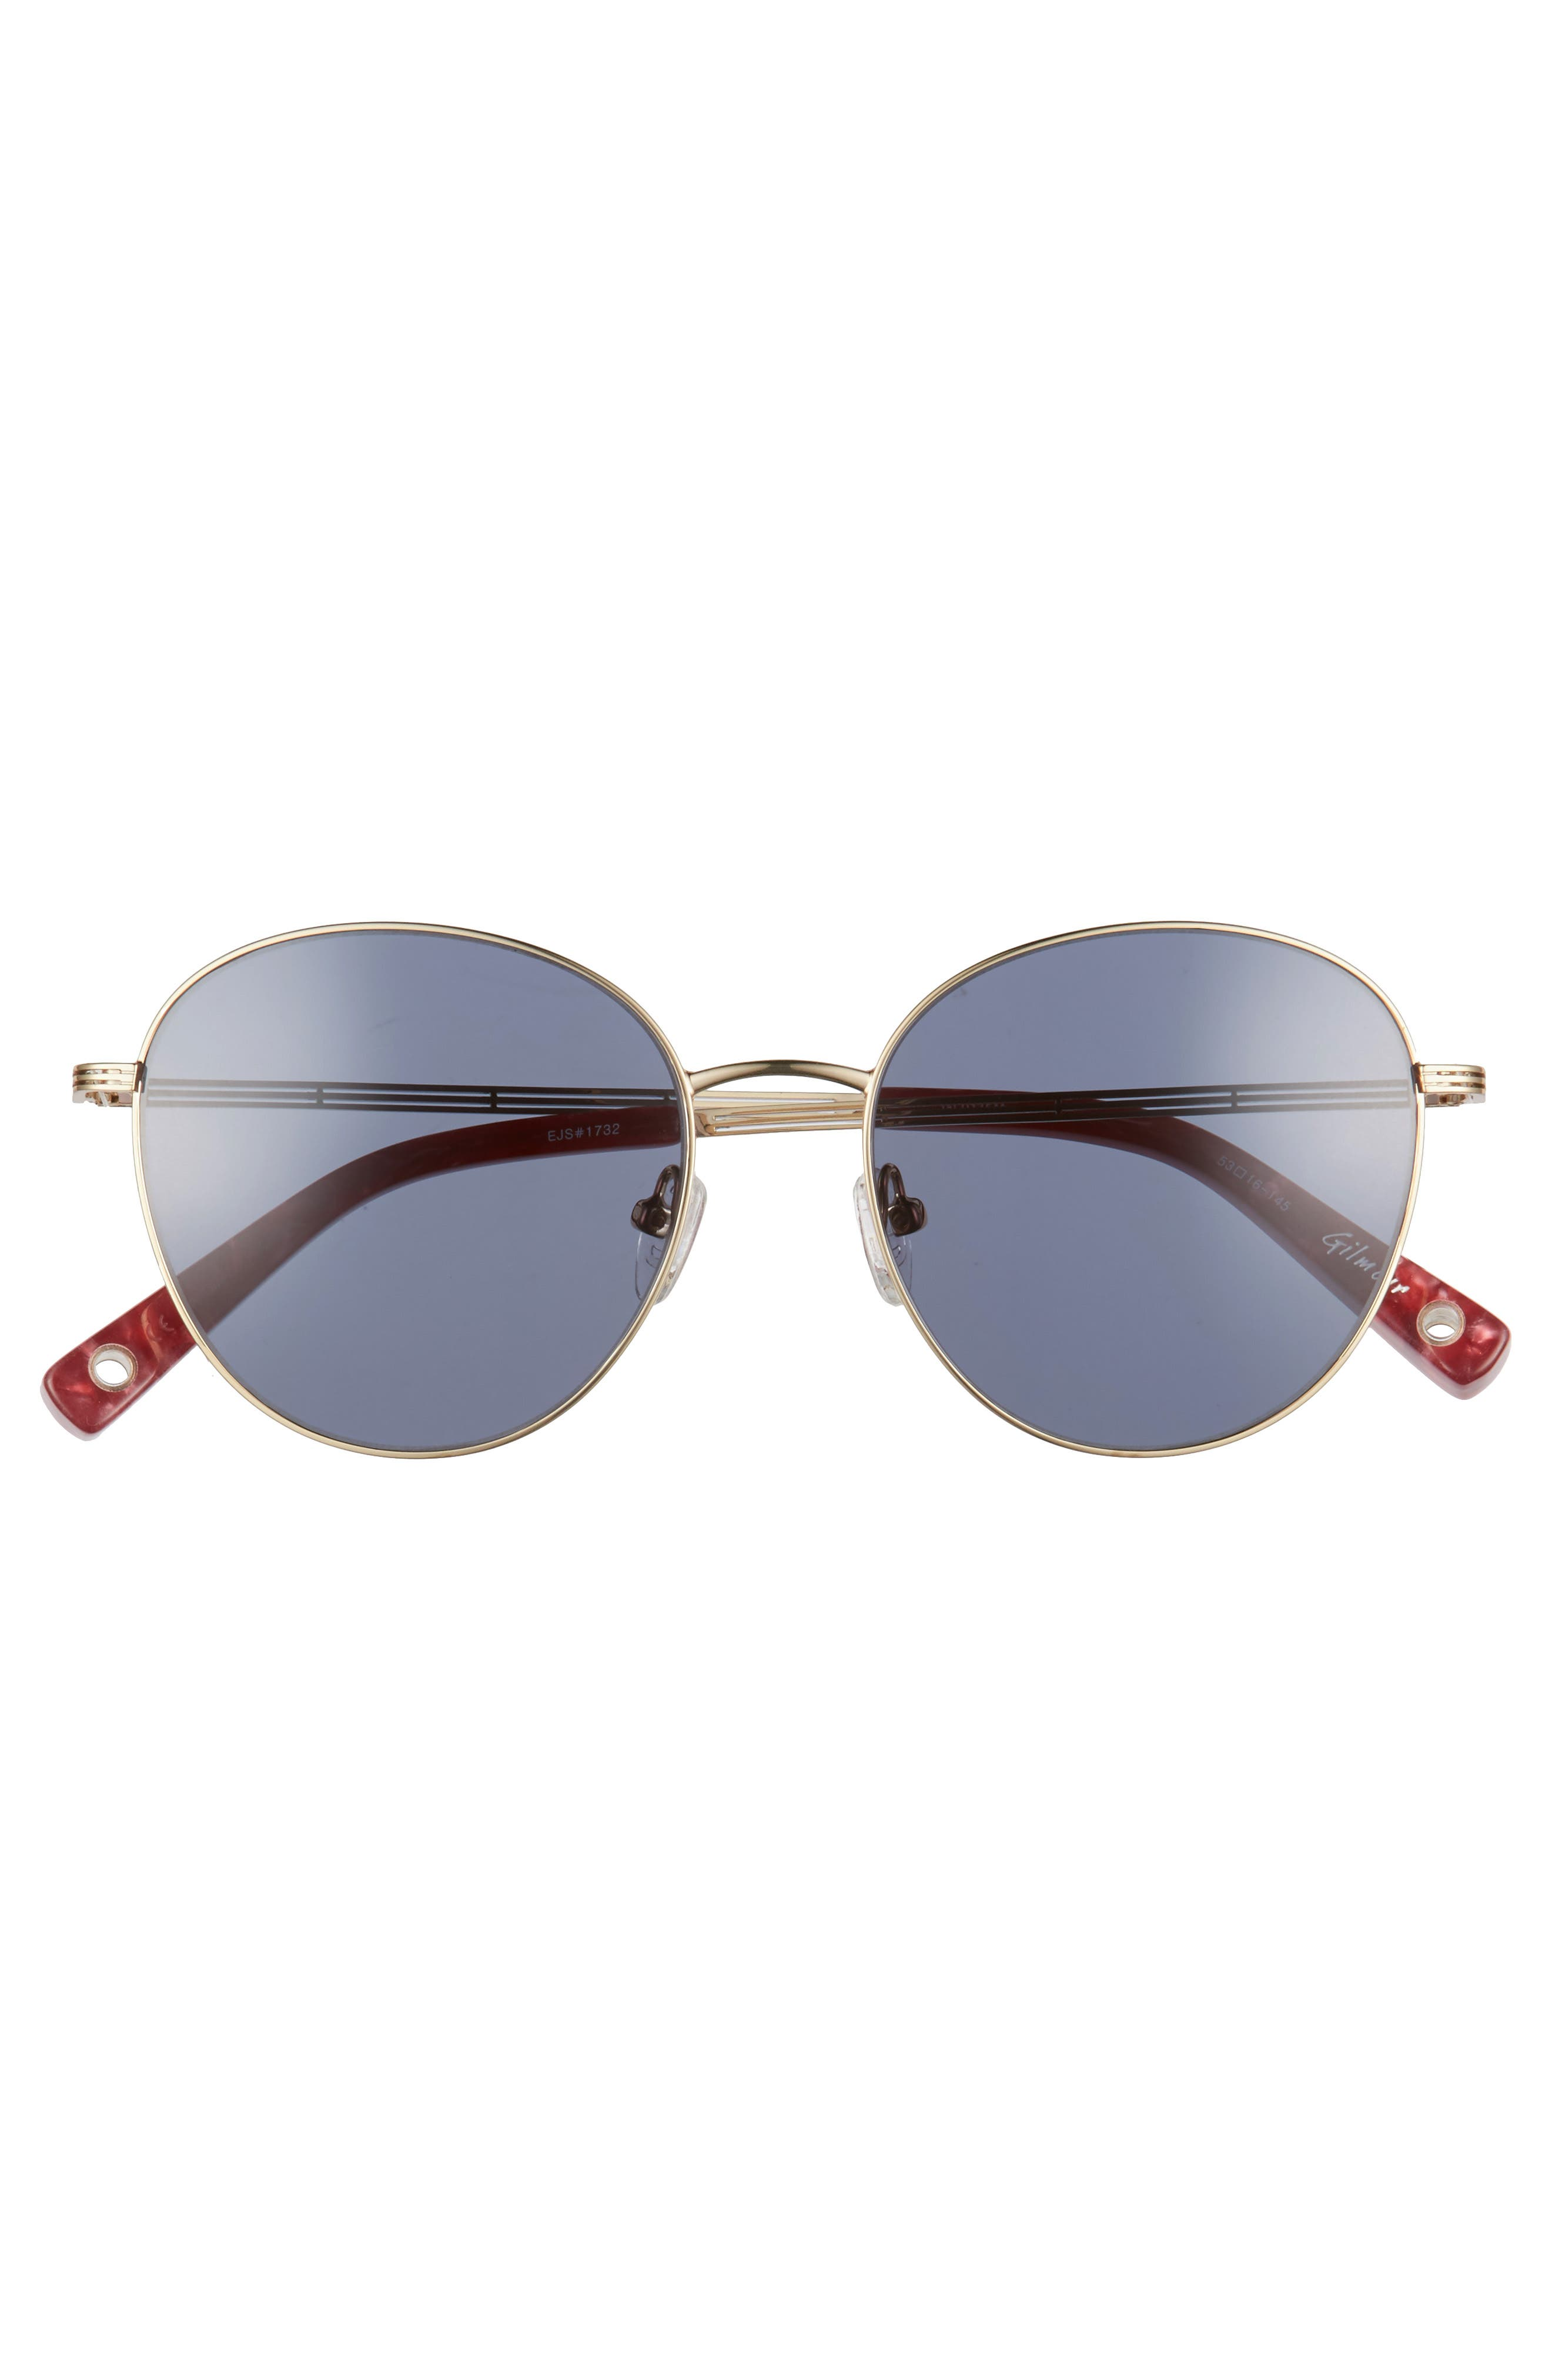 Gilmour 53mm Round Sunglasses & Beaded Chain,                             Alternate thumbnail 8, color,